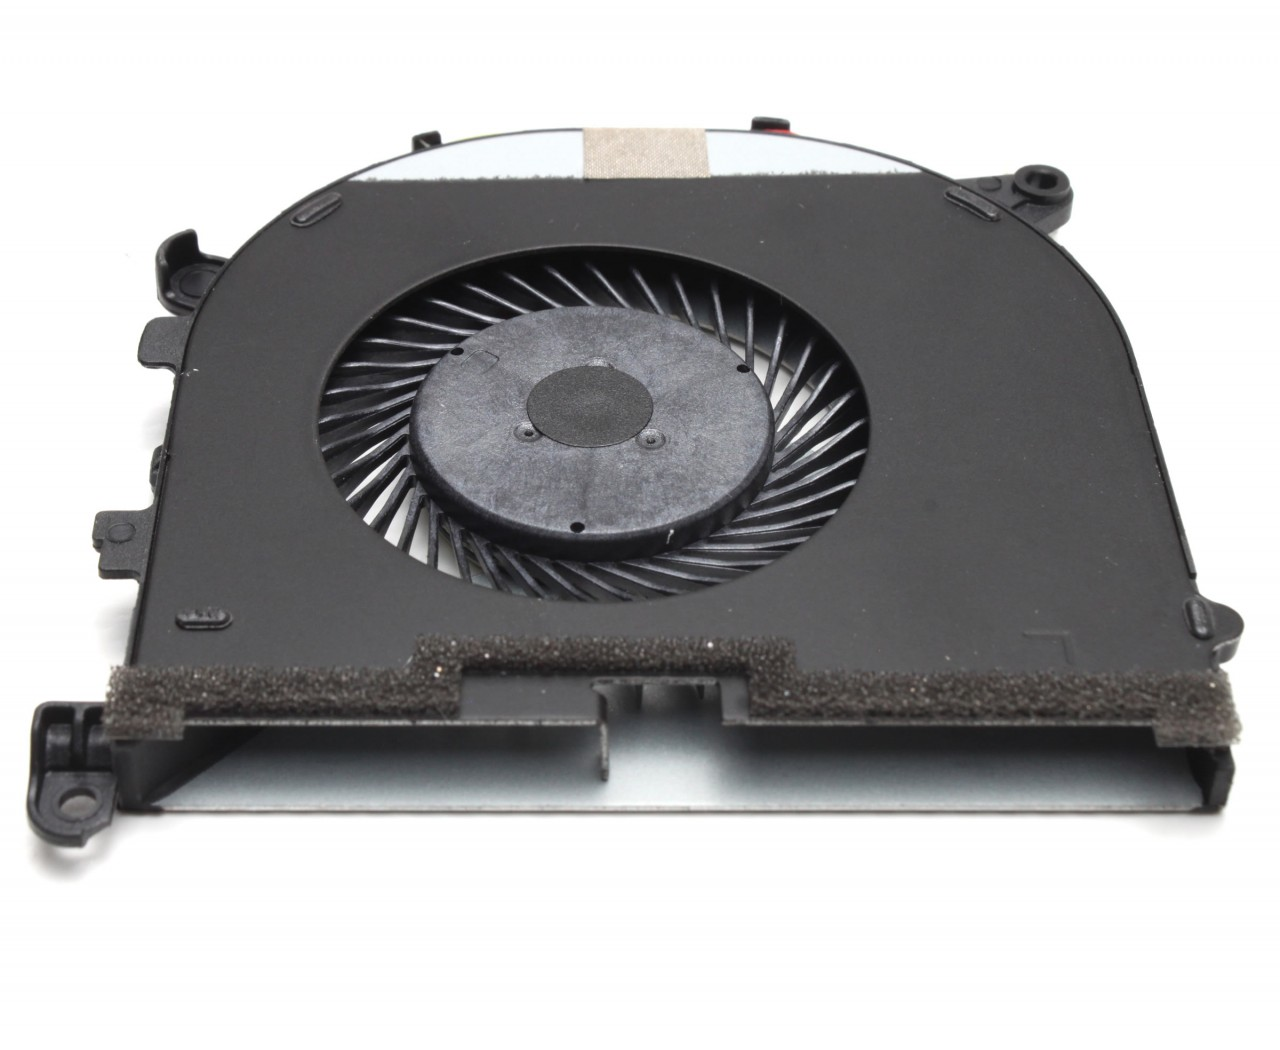 Cooler laptop Dell 0RVTXY Stanga imagine powerlaptop.ro 2021